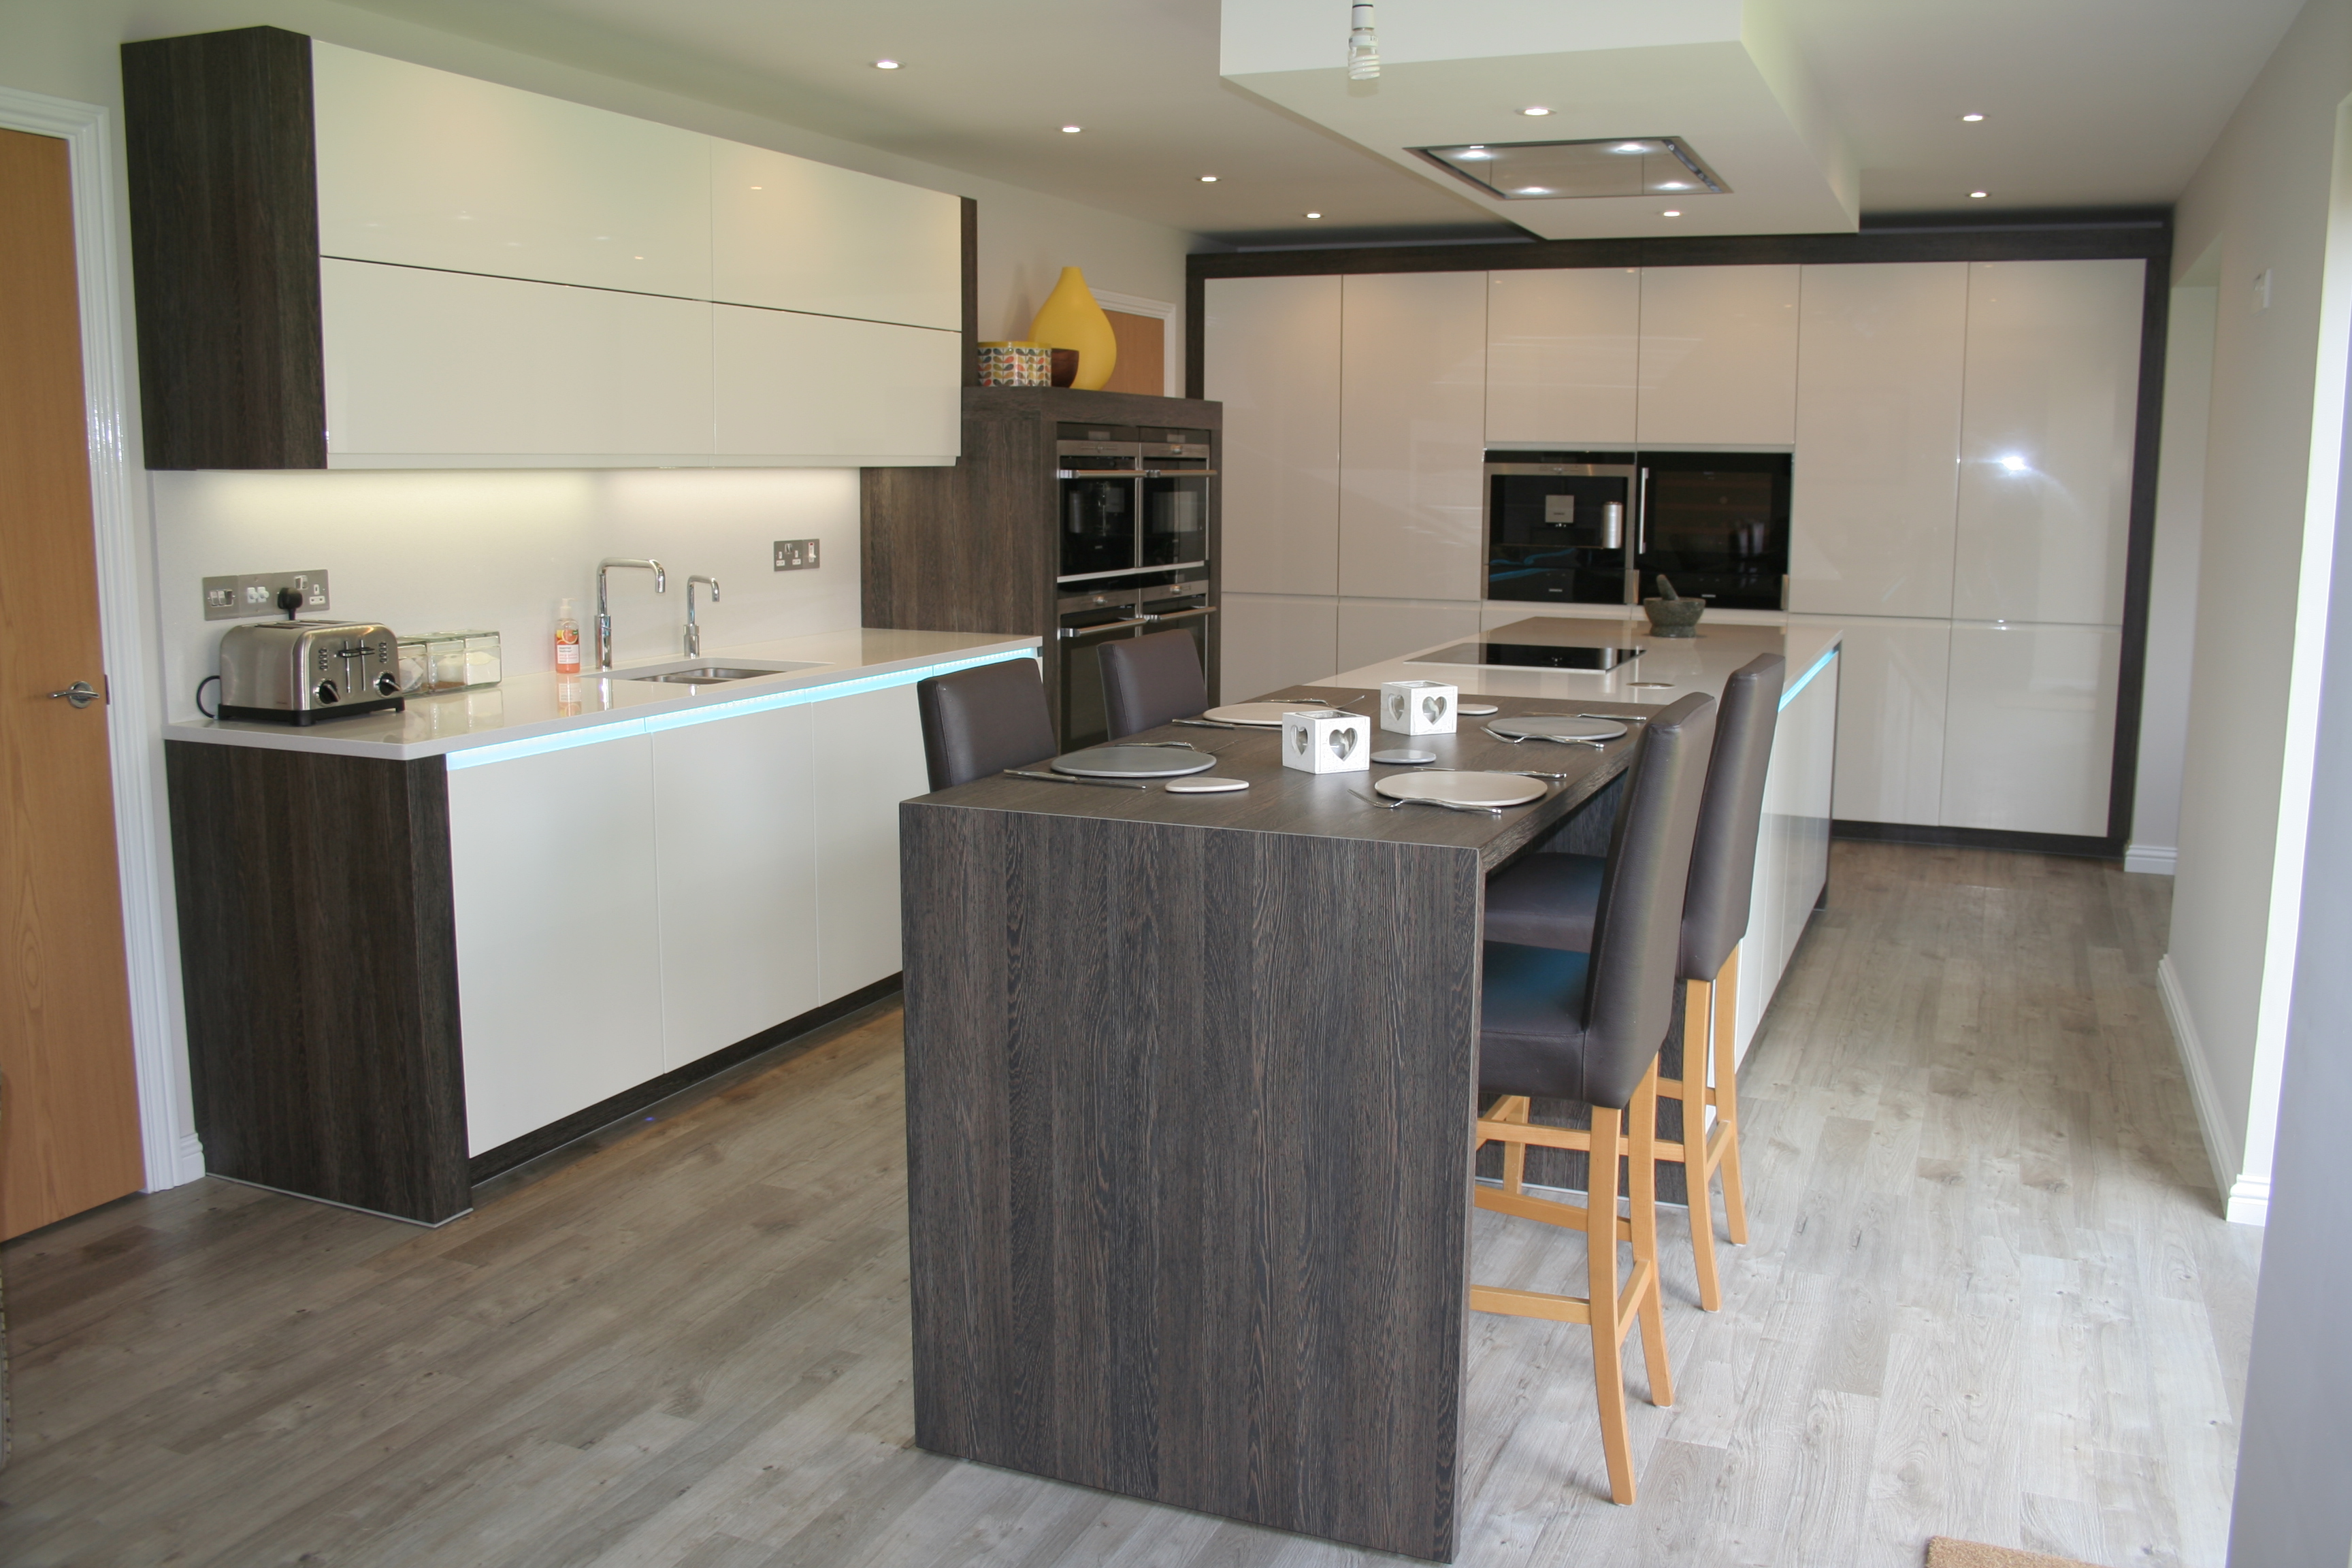 Küche Rational Solo Kitchens Designed By Kitchensmiths